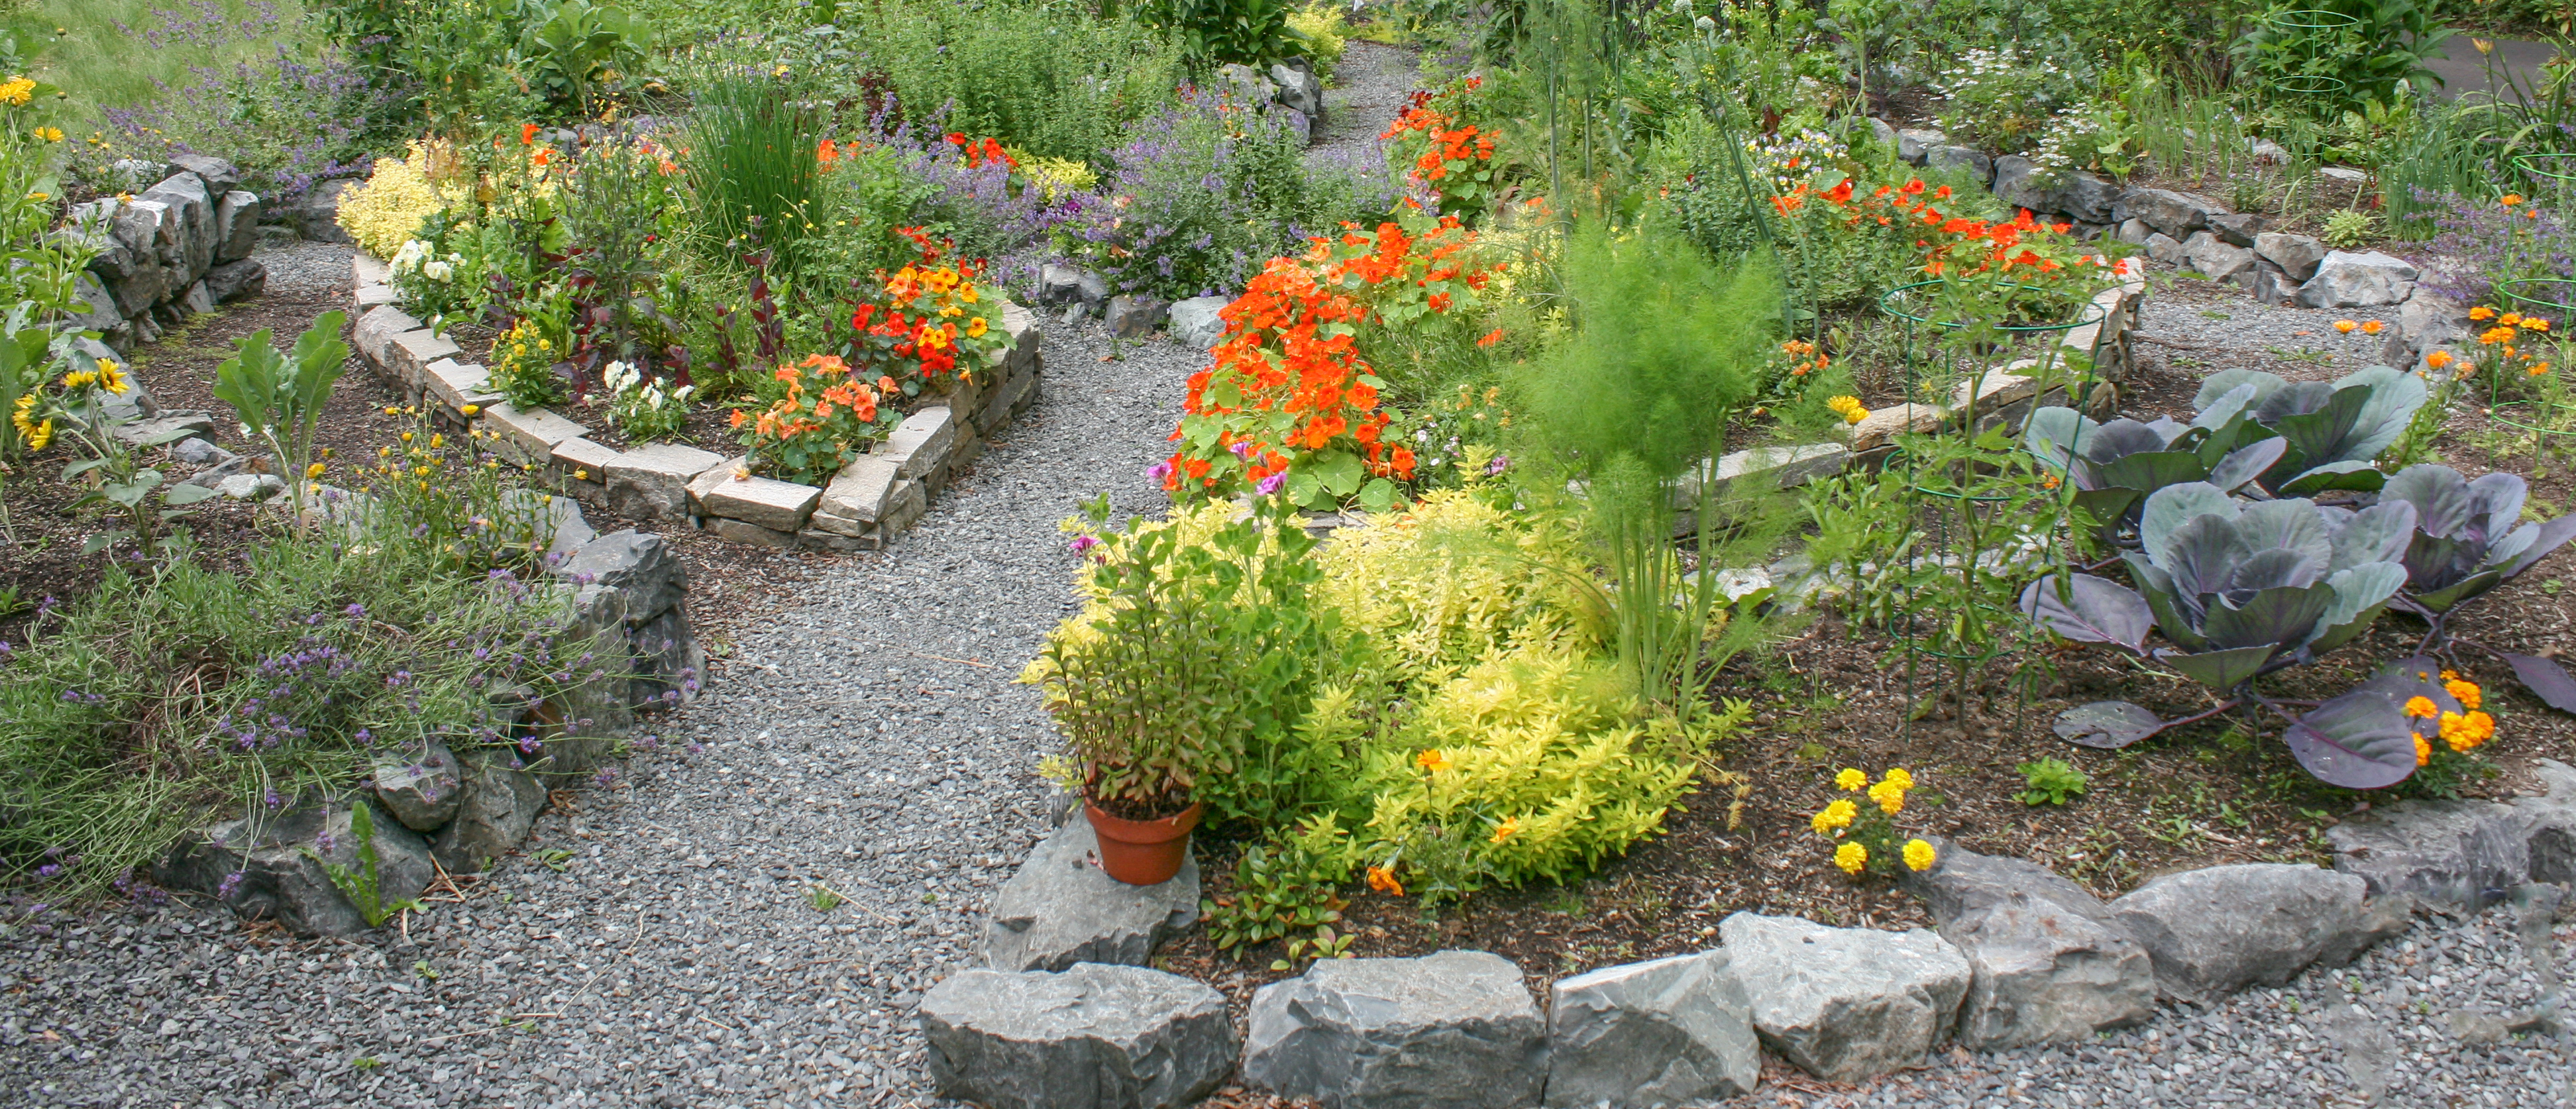 A cultivated garden pathway.